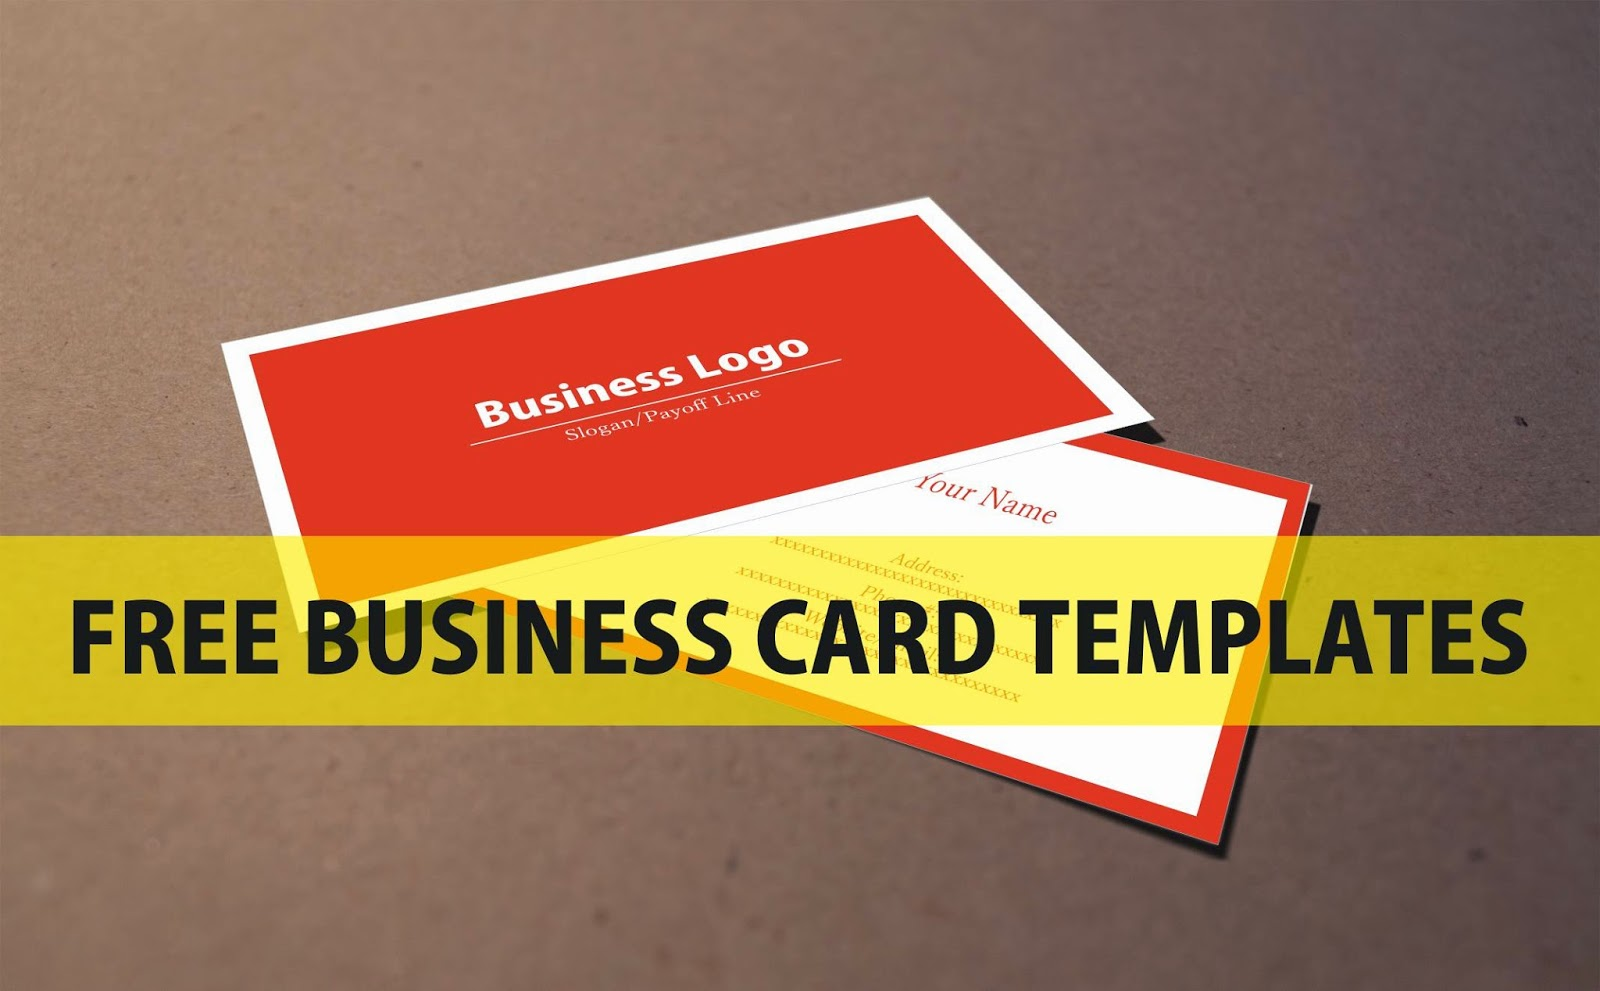 Free business card template download coreldraw file a graphic free business card template download coreldraw file friedricerecipe Image collections